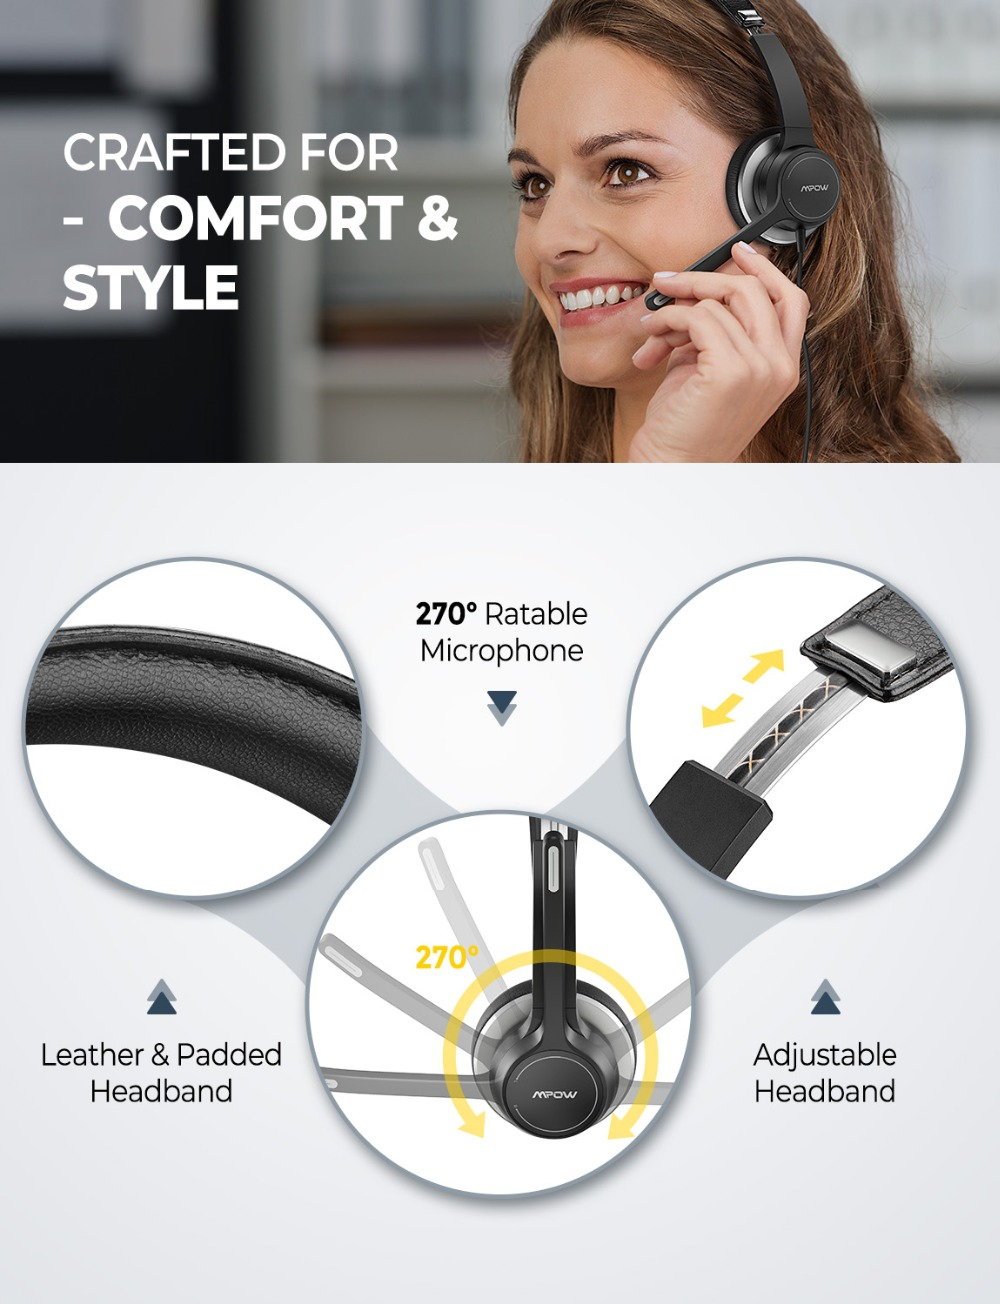 Mpow 328 Wireless Headphones USB 3.5mm Computer Headset With Microphone Noise Reduction Sound Card For PC Skype Call Center Mac (2)